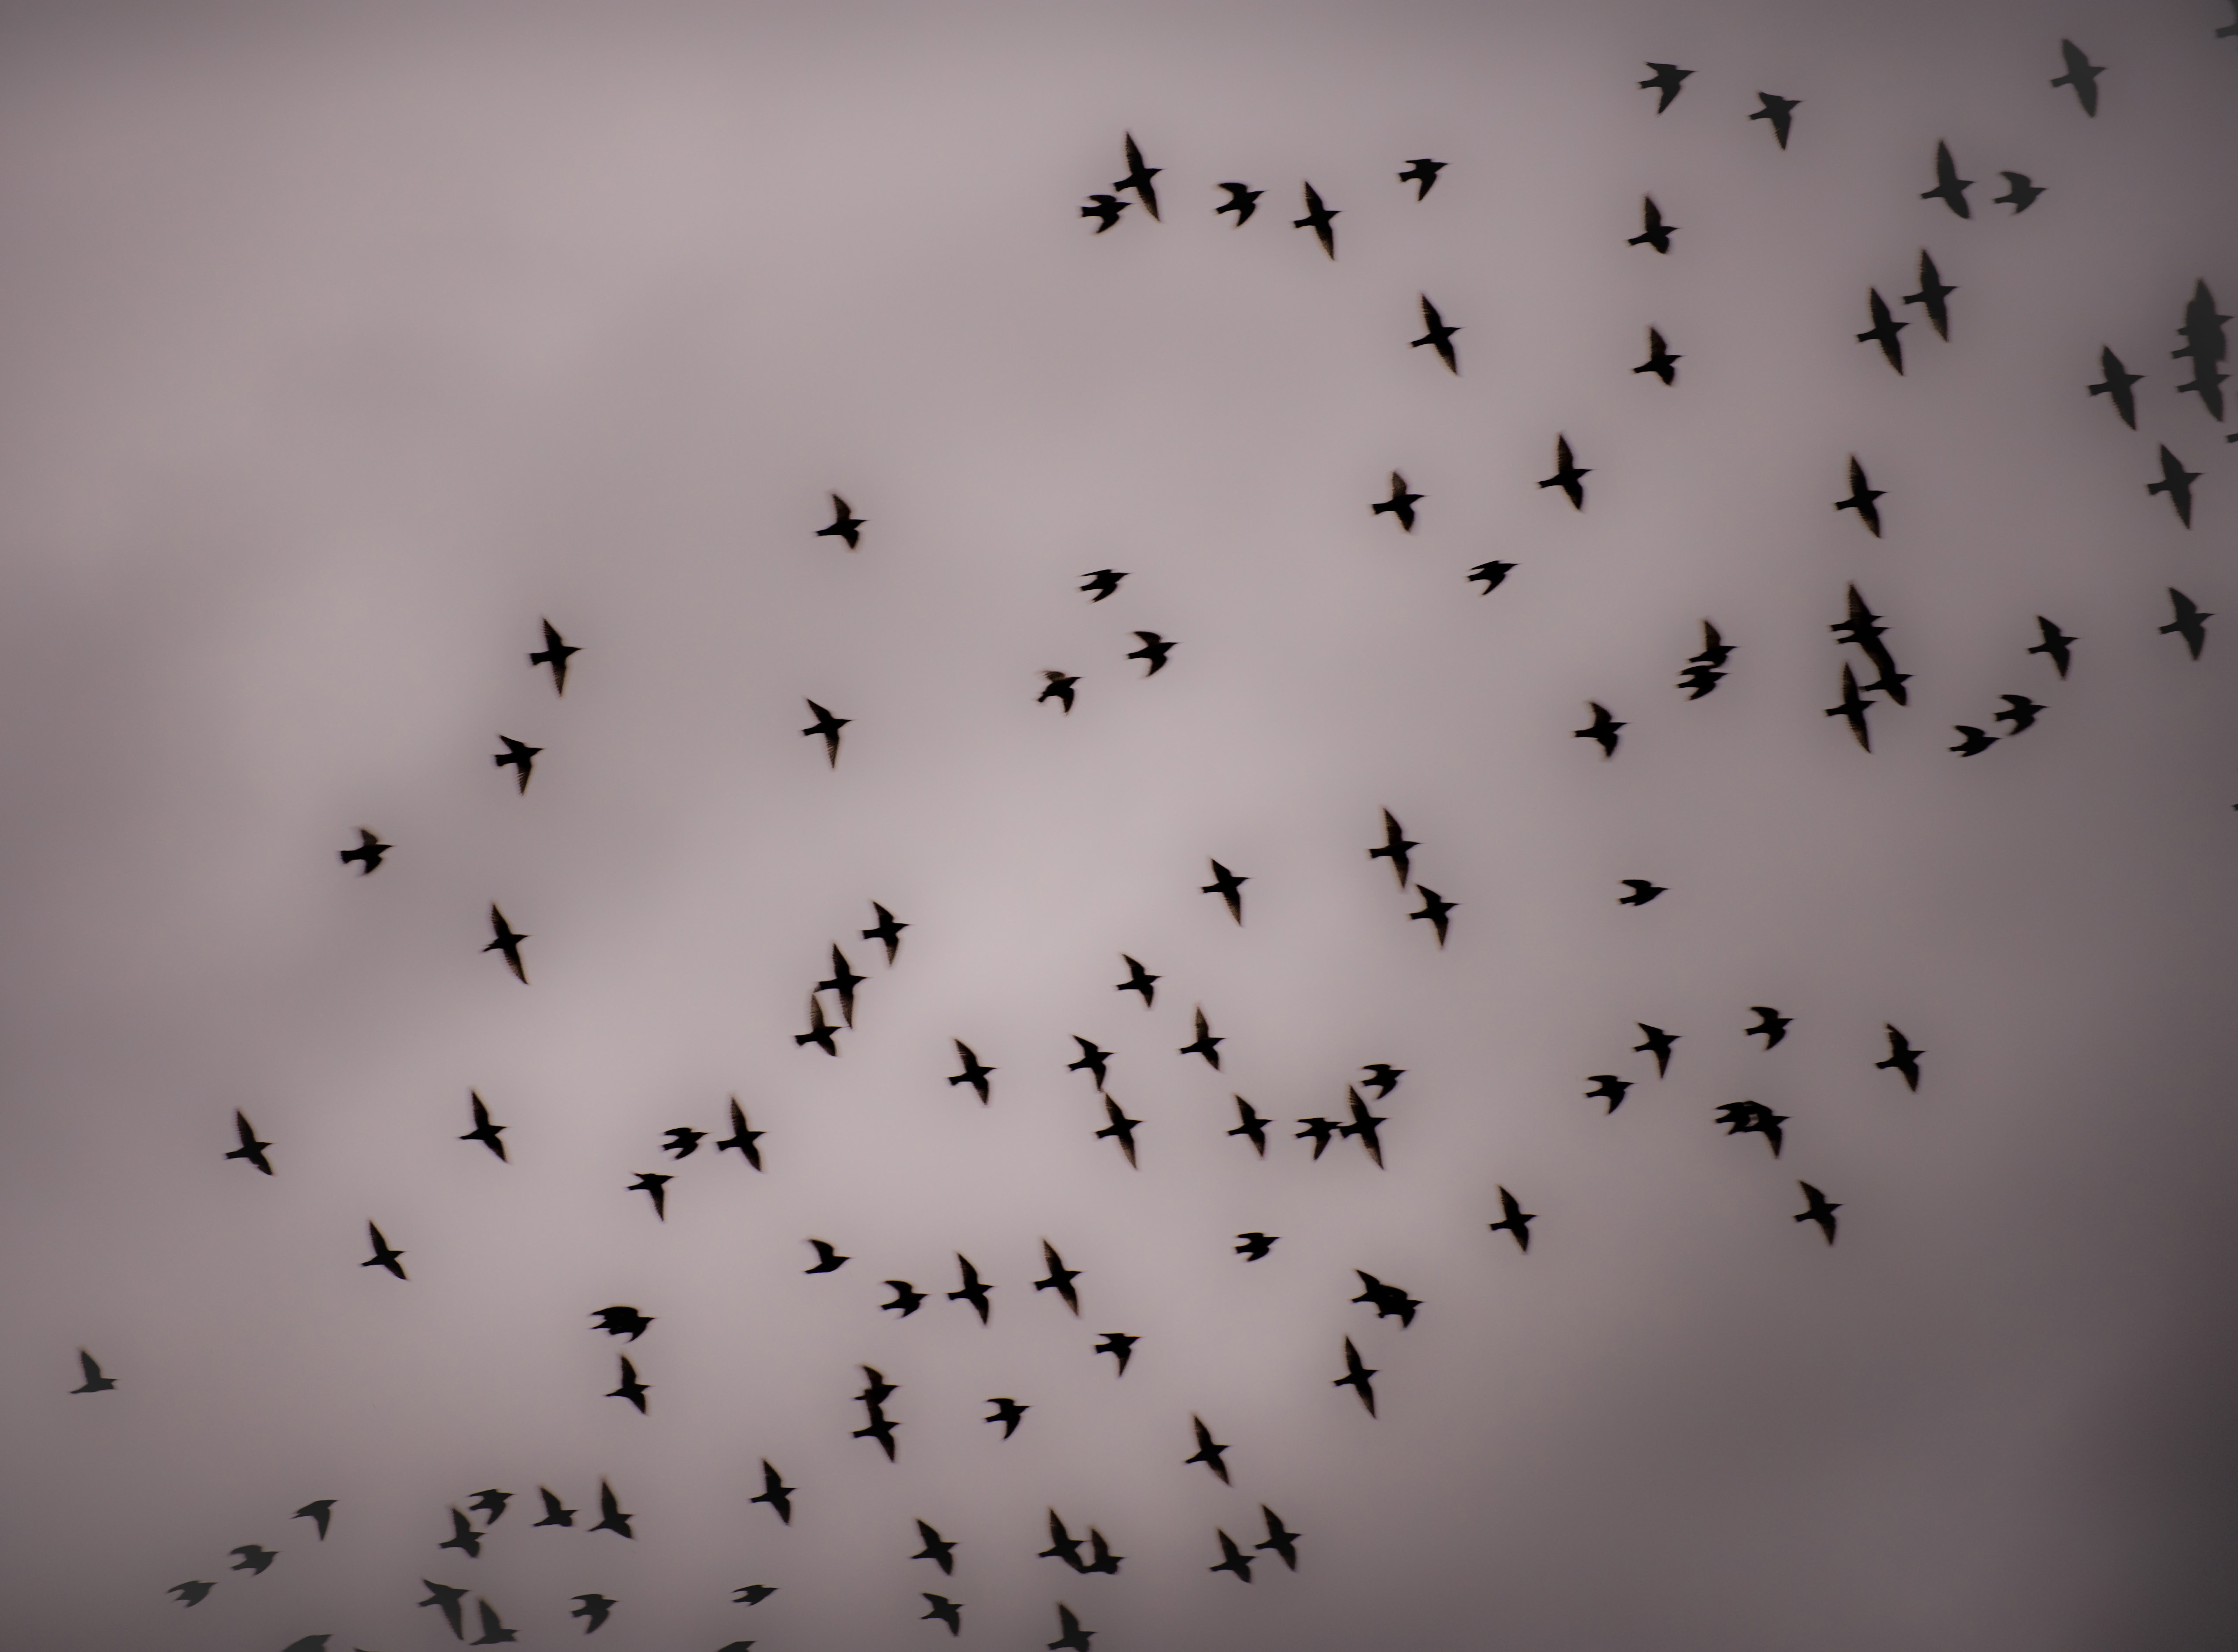 Starling Murmuration | Starling Flocks and Roosting - The RSPB